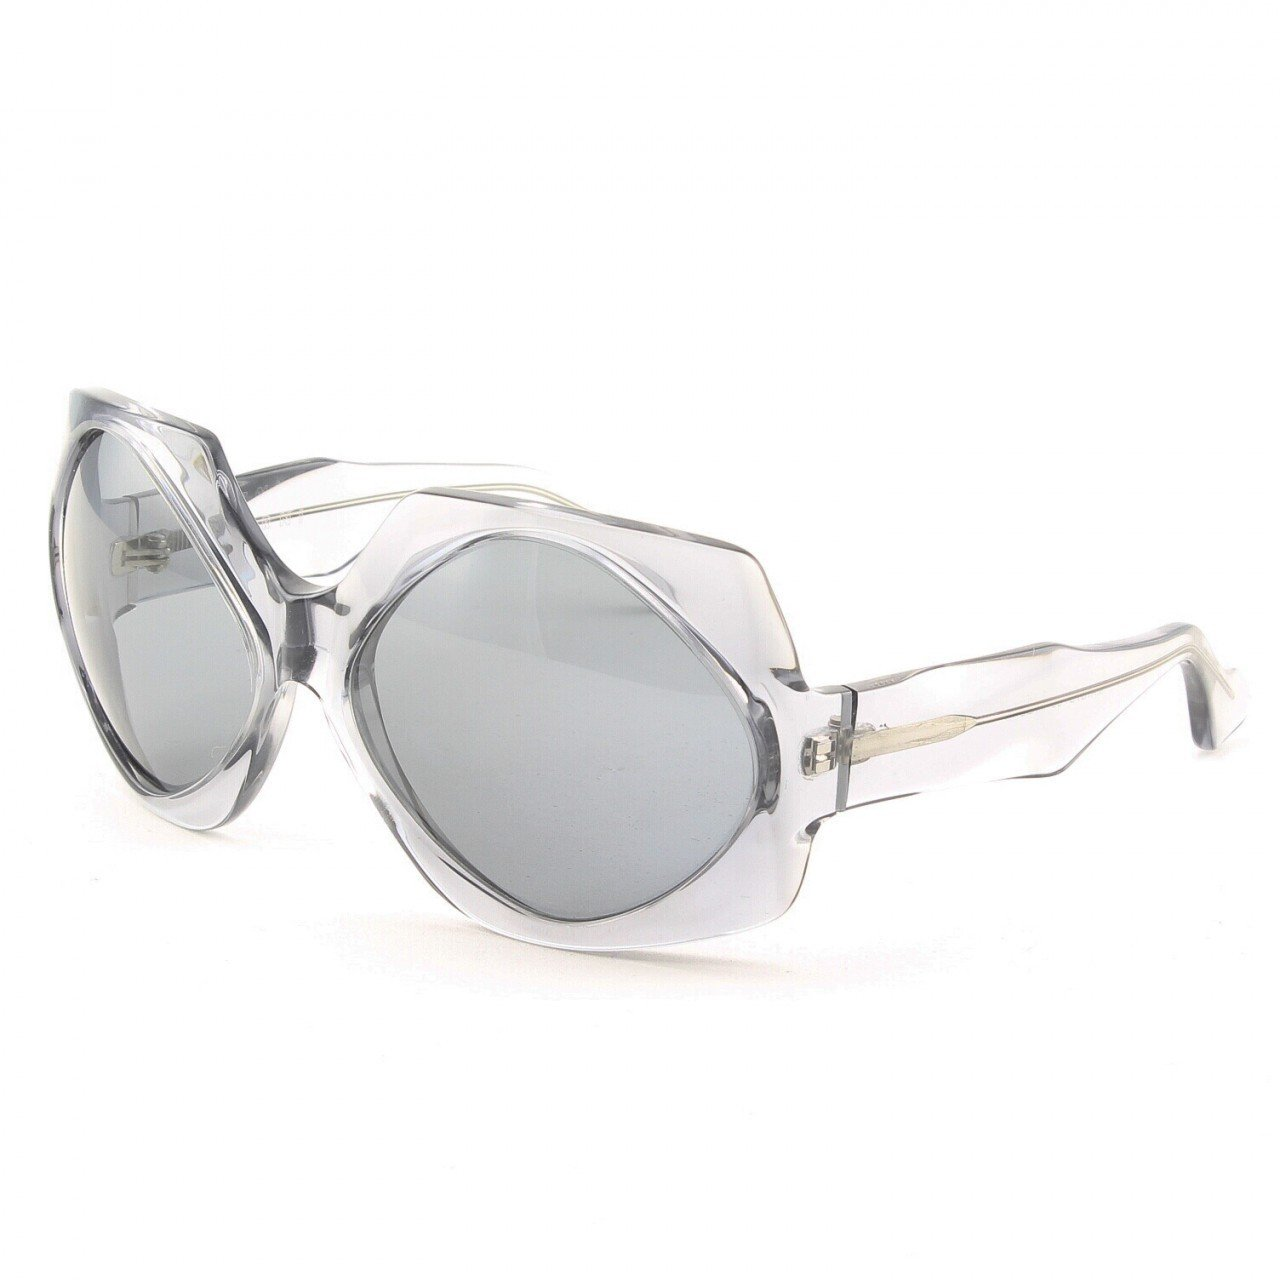 Marni MA187S Sunglasses Col. 06 Clear Light Gray with Gray Lenses